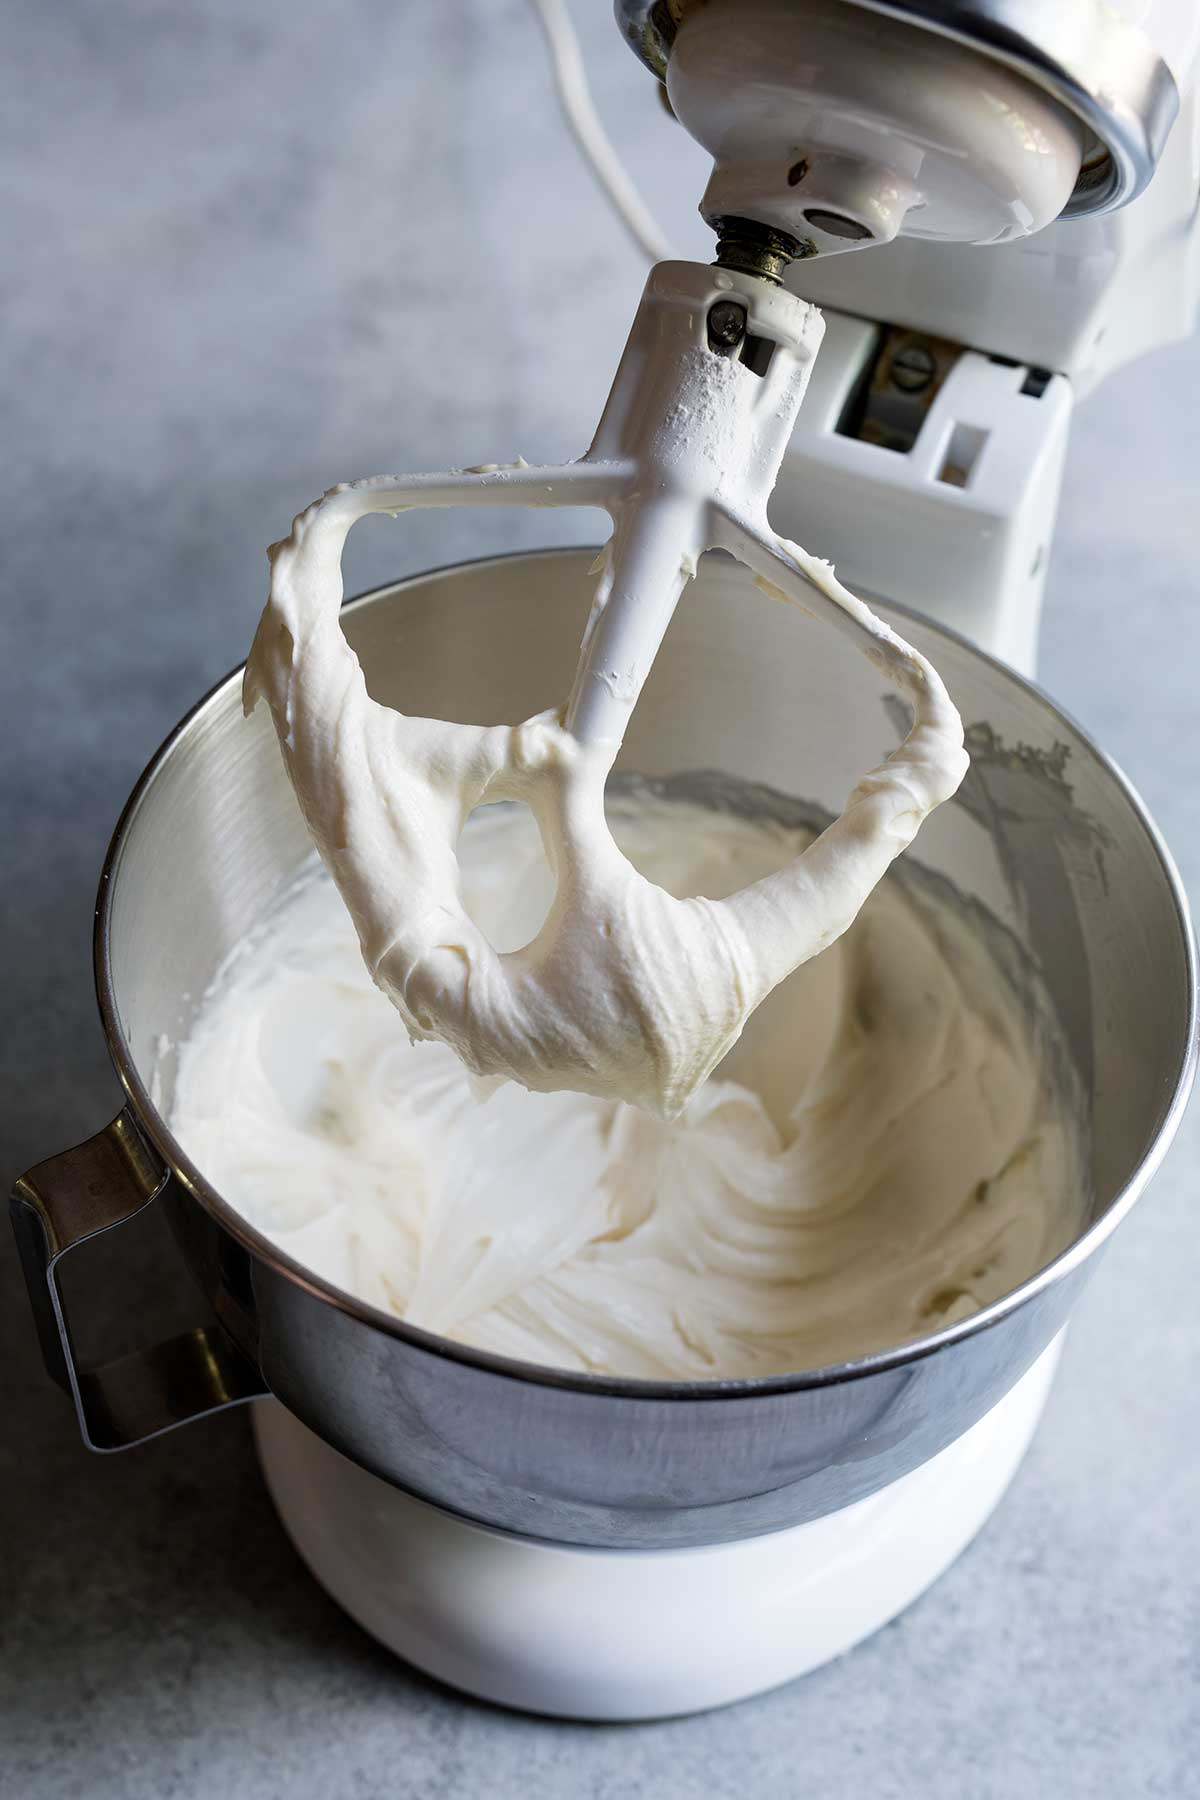 A Kitchen Aid stand mixer fitted with the paddle attachment lifted to show the finished cream cheese frosting.